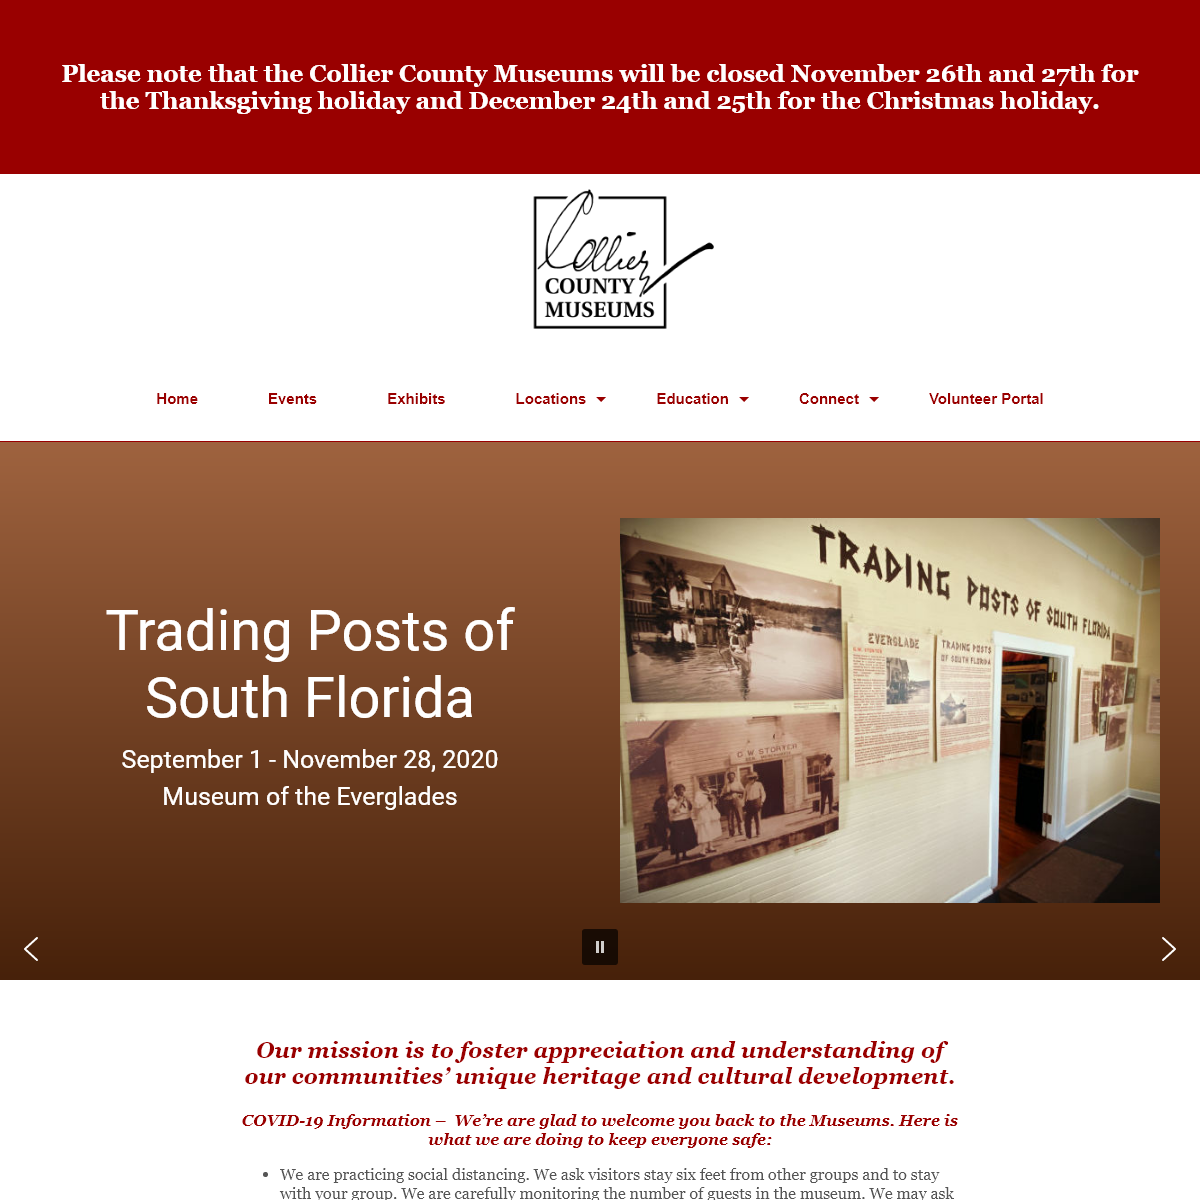 Collier County Museums